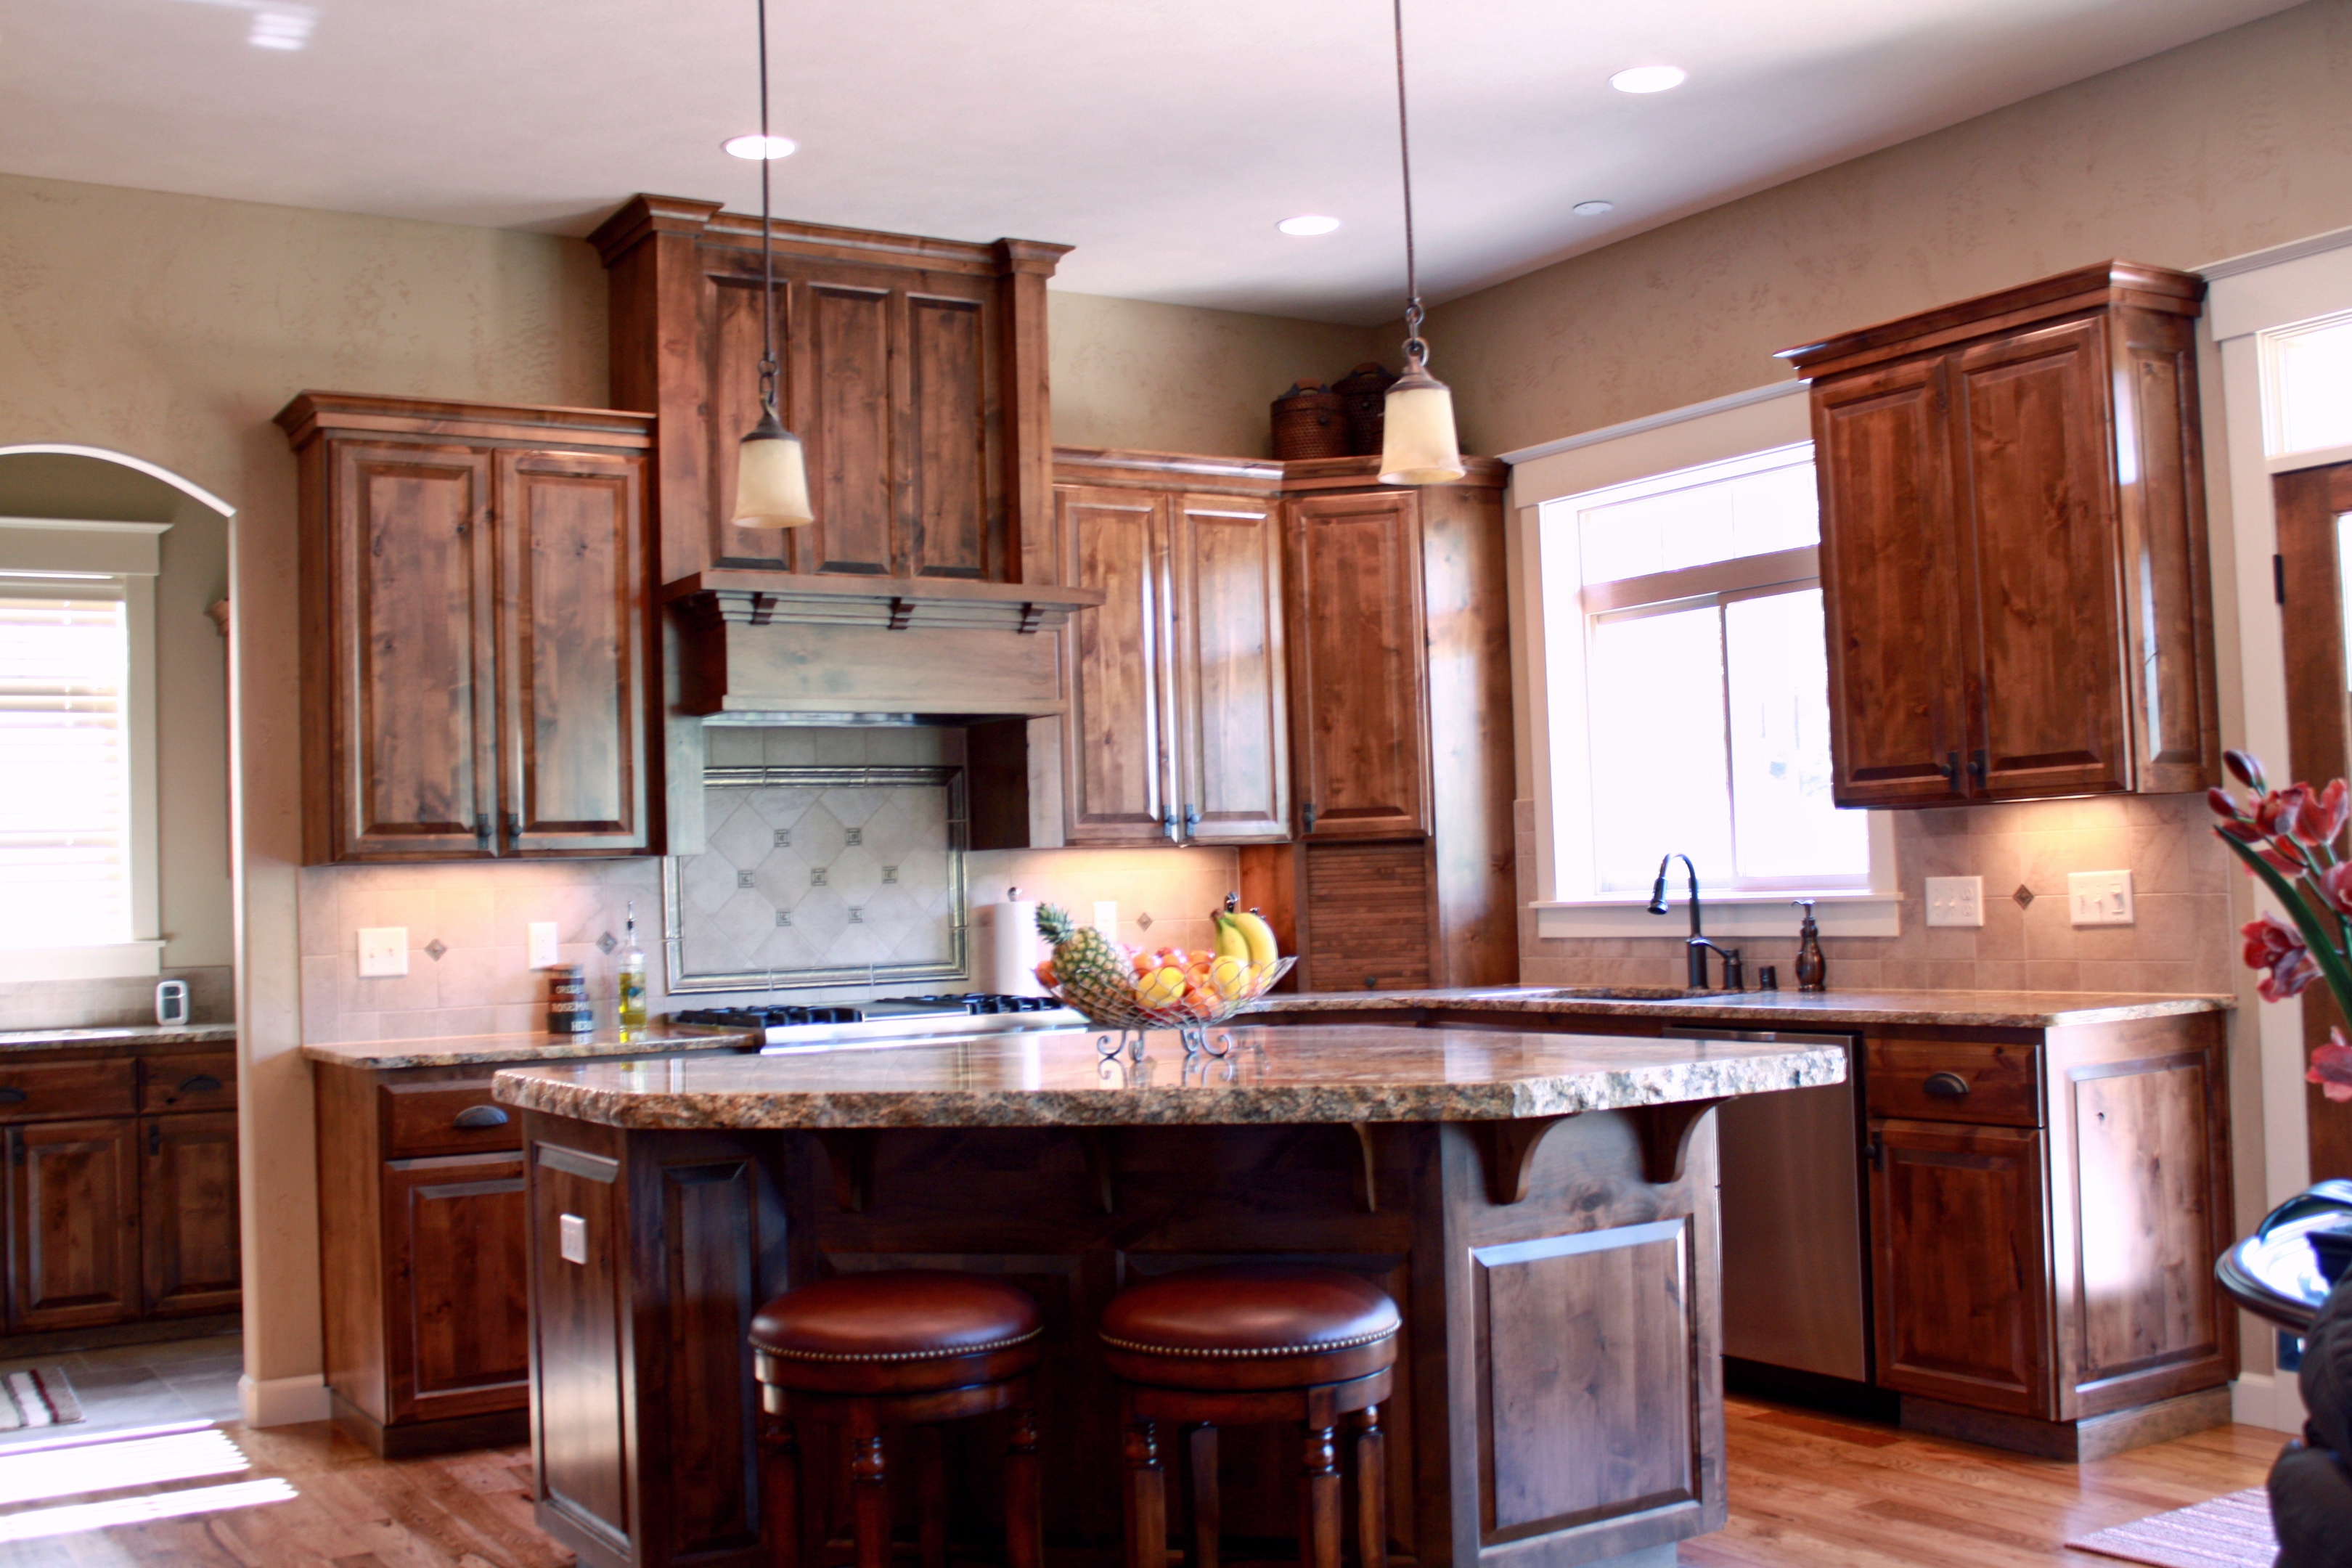 affordable custom cabinets showroom thumb kitchen craftsman style knotty alder dark color island overhang with standard bar supports appliance garage